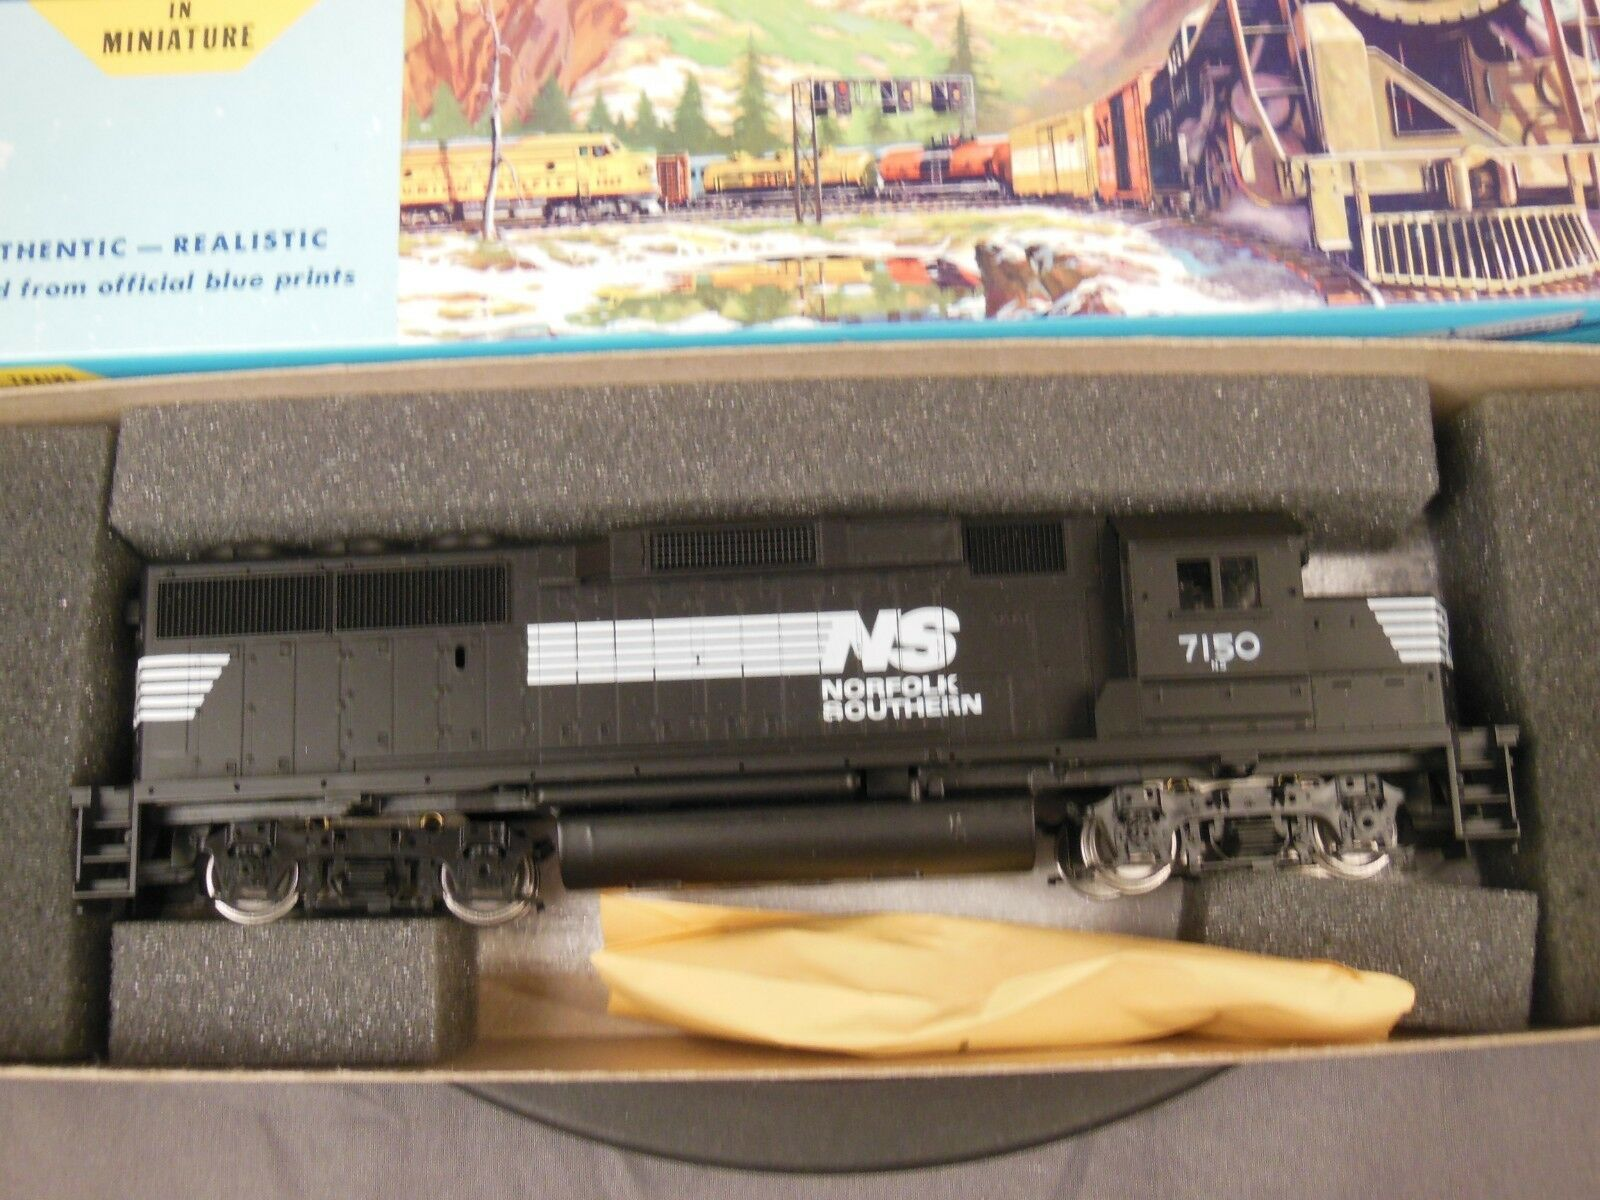 HO SCALE ATHEARN 4753 NORFOLK SOUTHERN GP60 LOCOMOTIVE